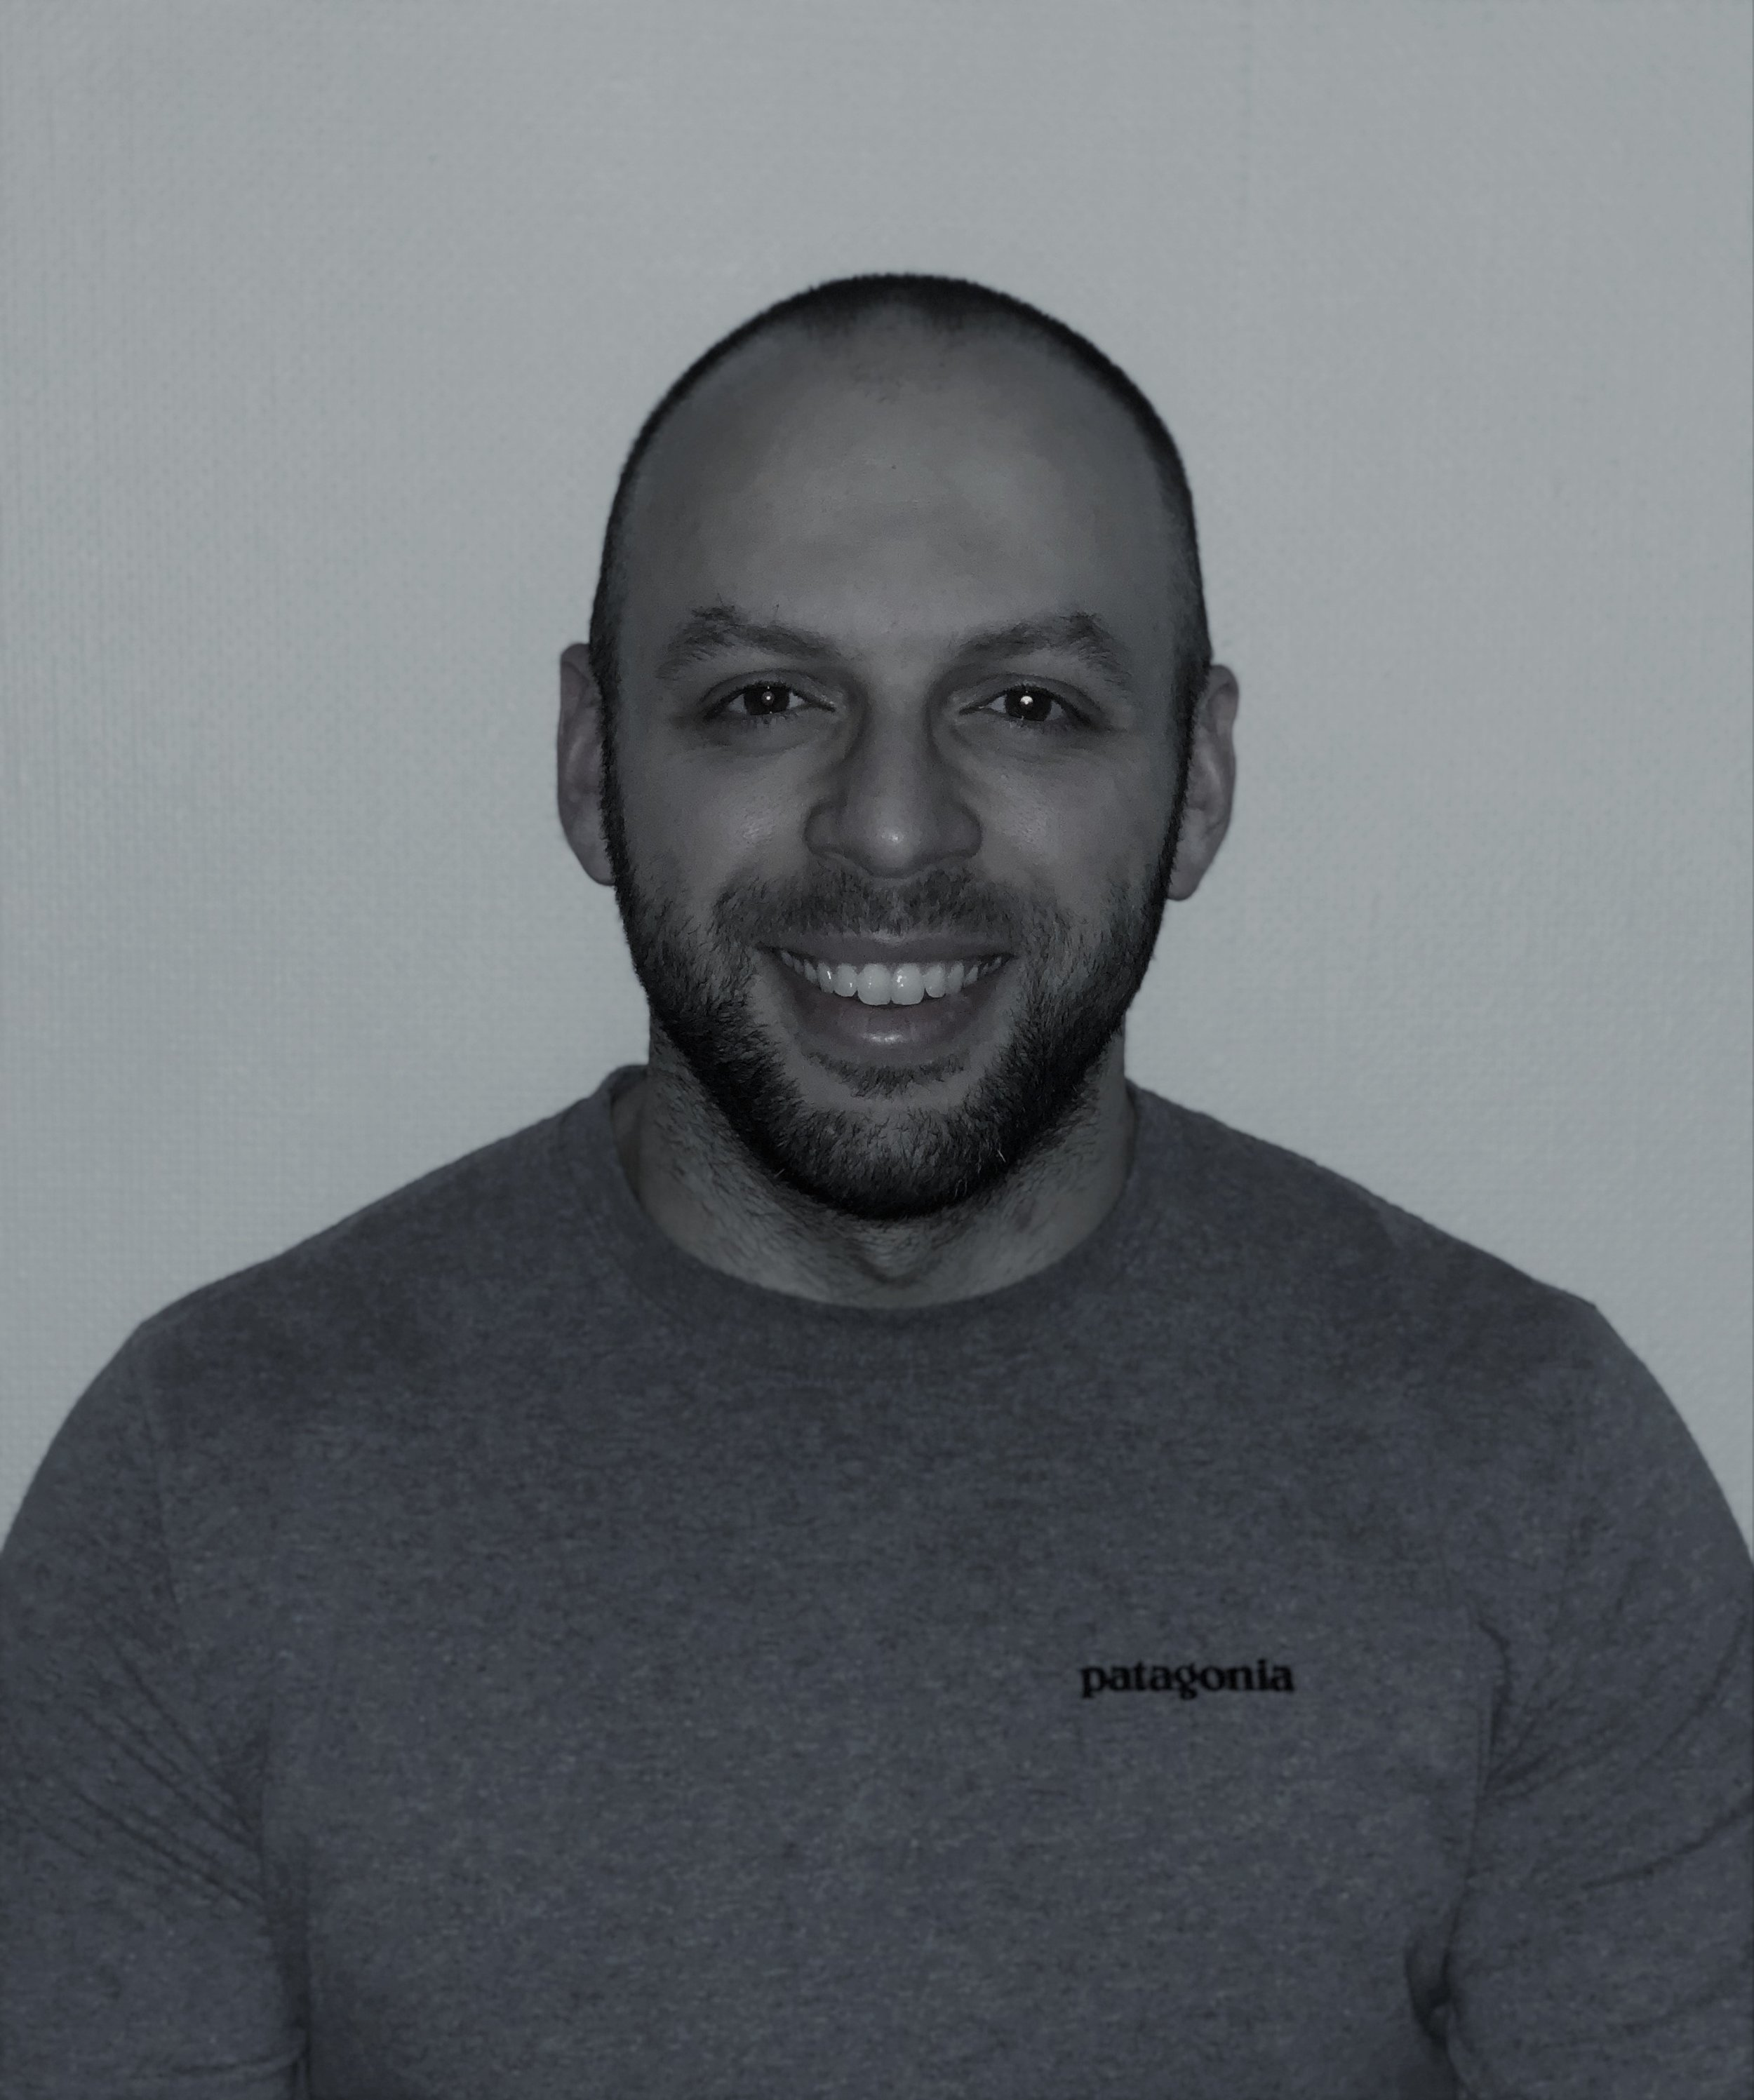 Omar Mohyieldin: Dunedin Hospital   I am currently a PGY4 Surgical Registrar at Dunedin Hospital and my goal is a career in General Surgery.  I believe STONZ is the right choice for doctors looking to make the most of their training.   I look forward to being a delegate for my colleagues at SDHB.